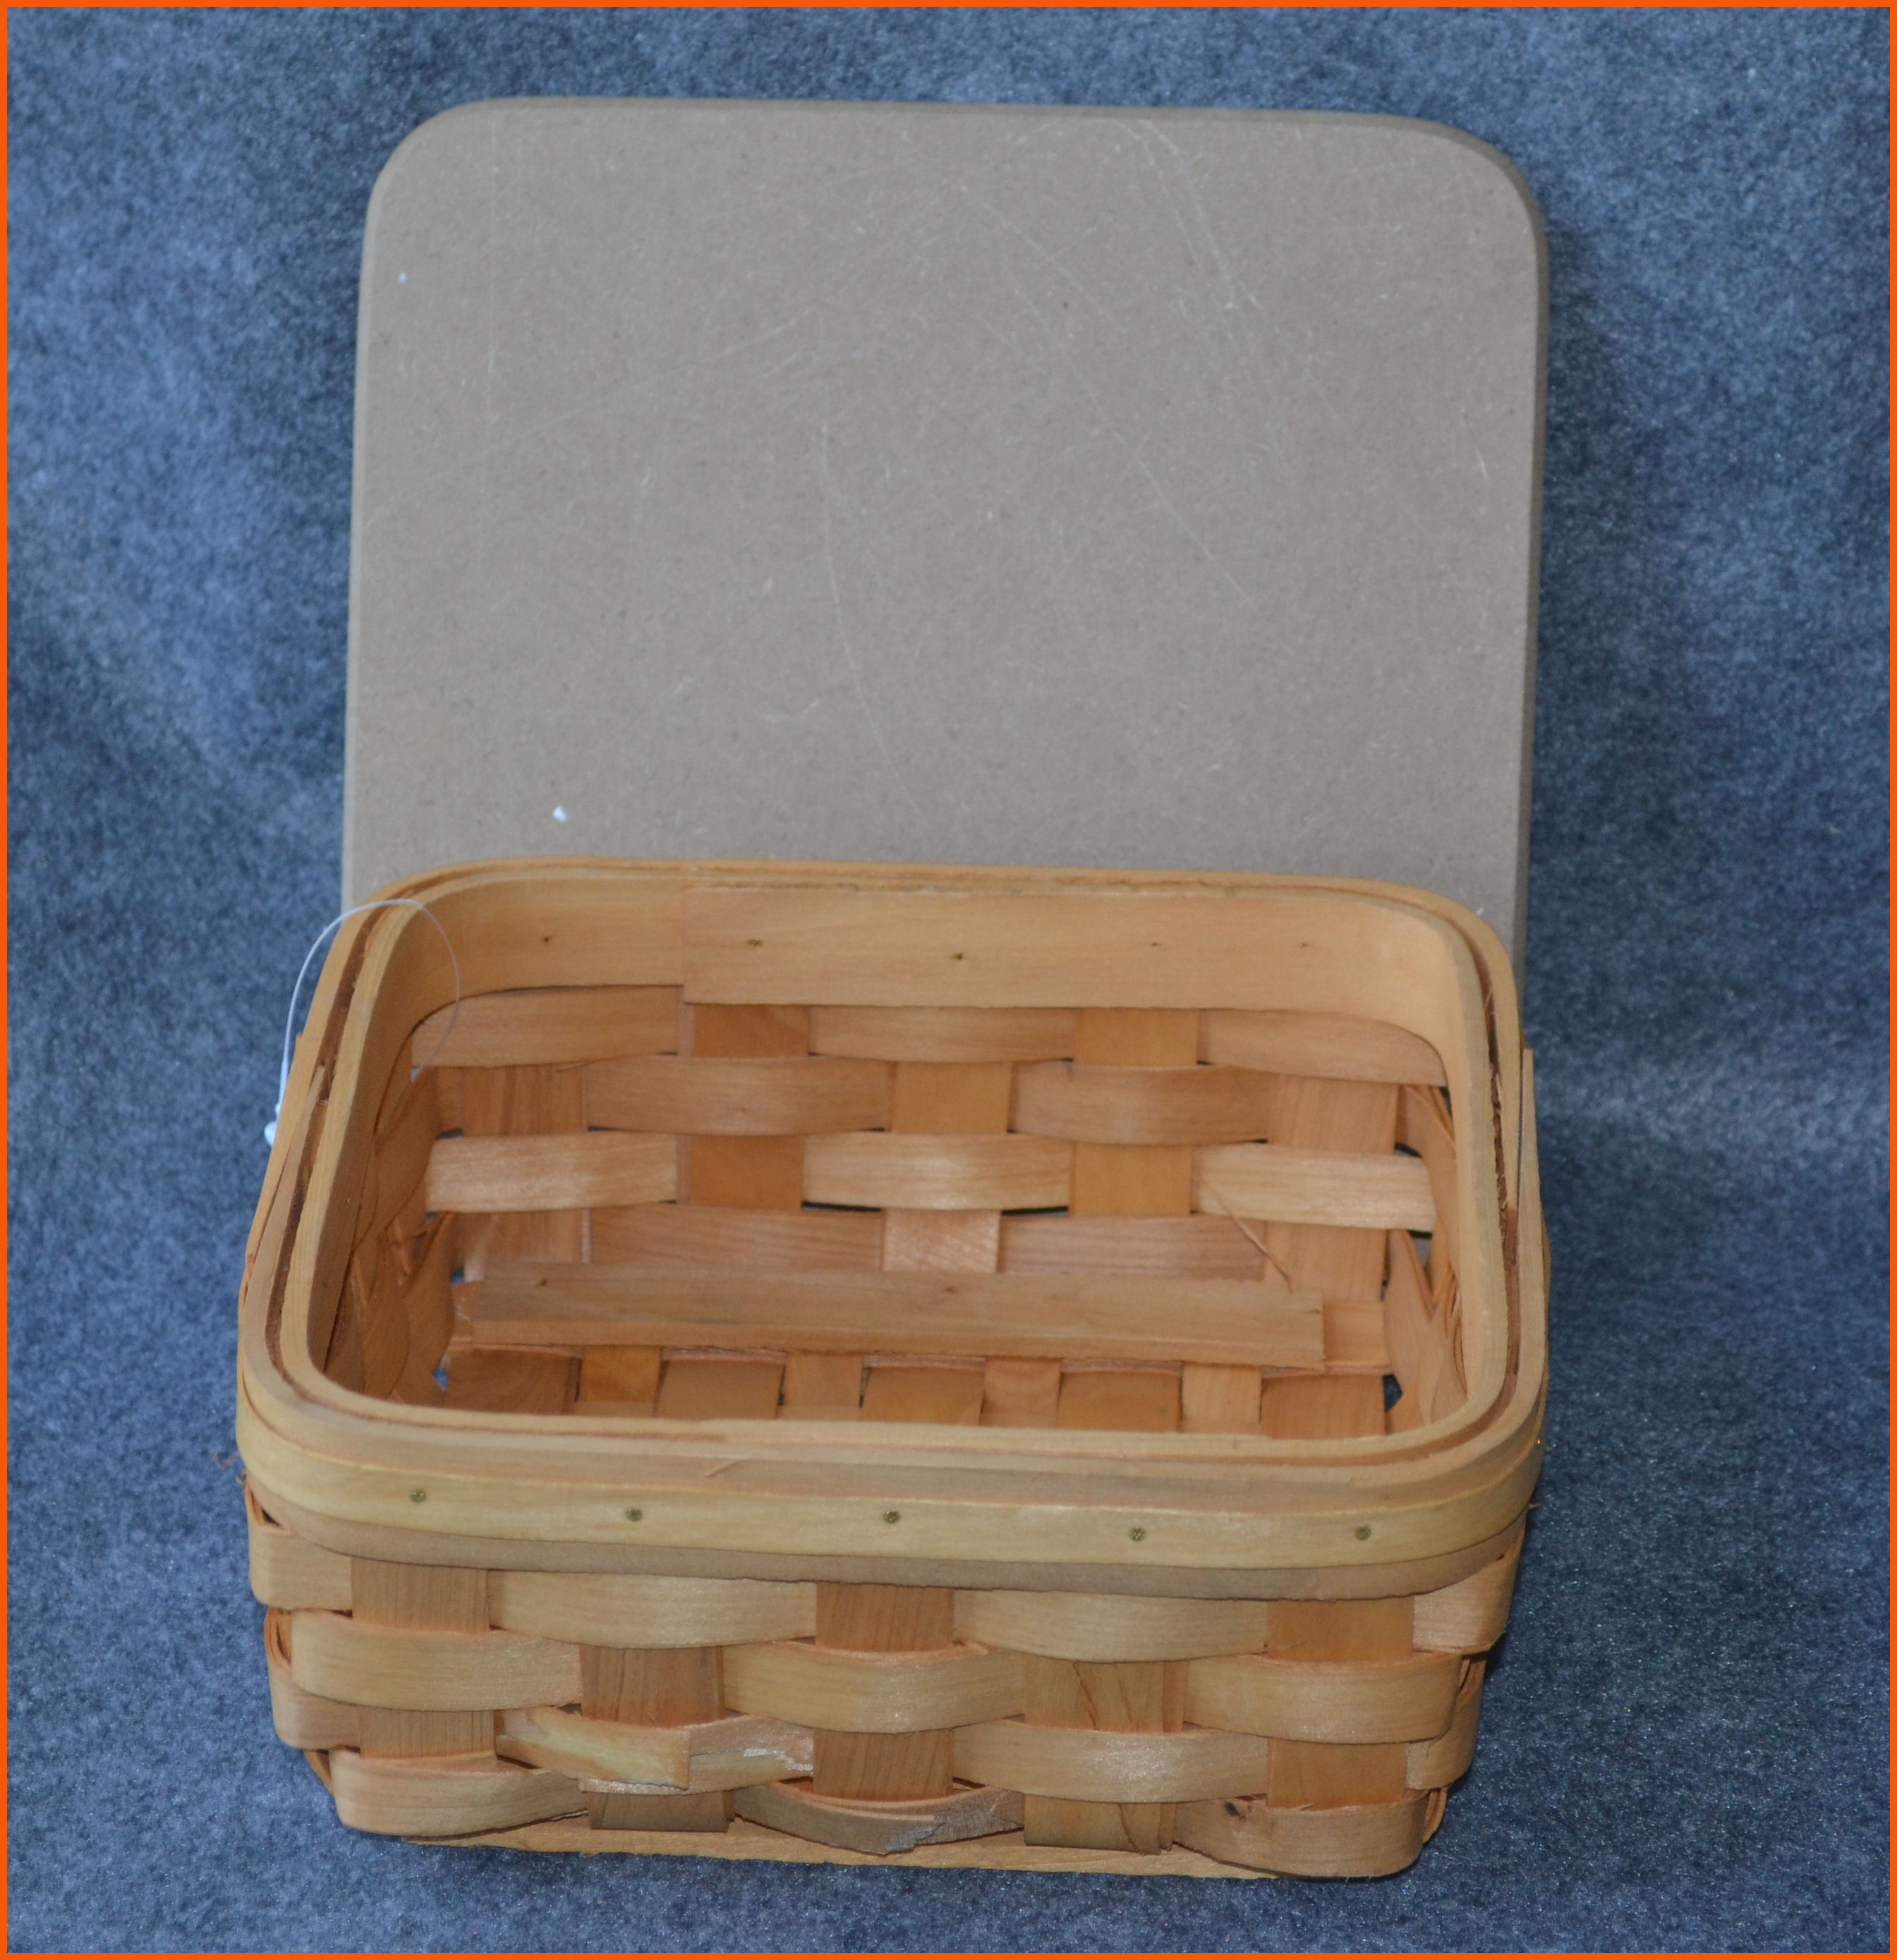 basket-square-reed-basket-with-mdf-lid-8-x-8-284817-lid-off.jpg